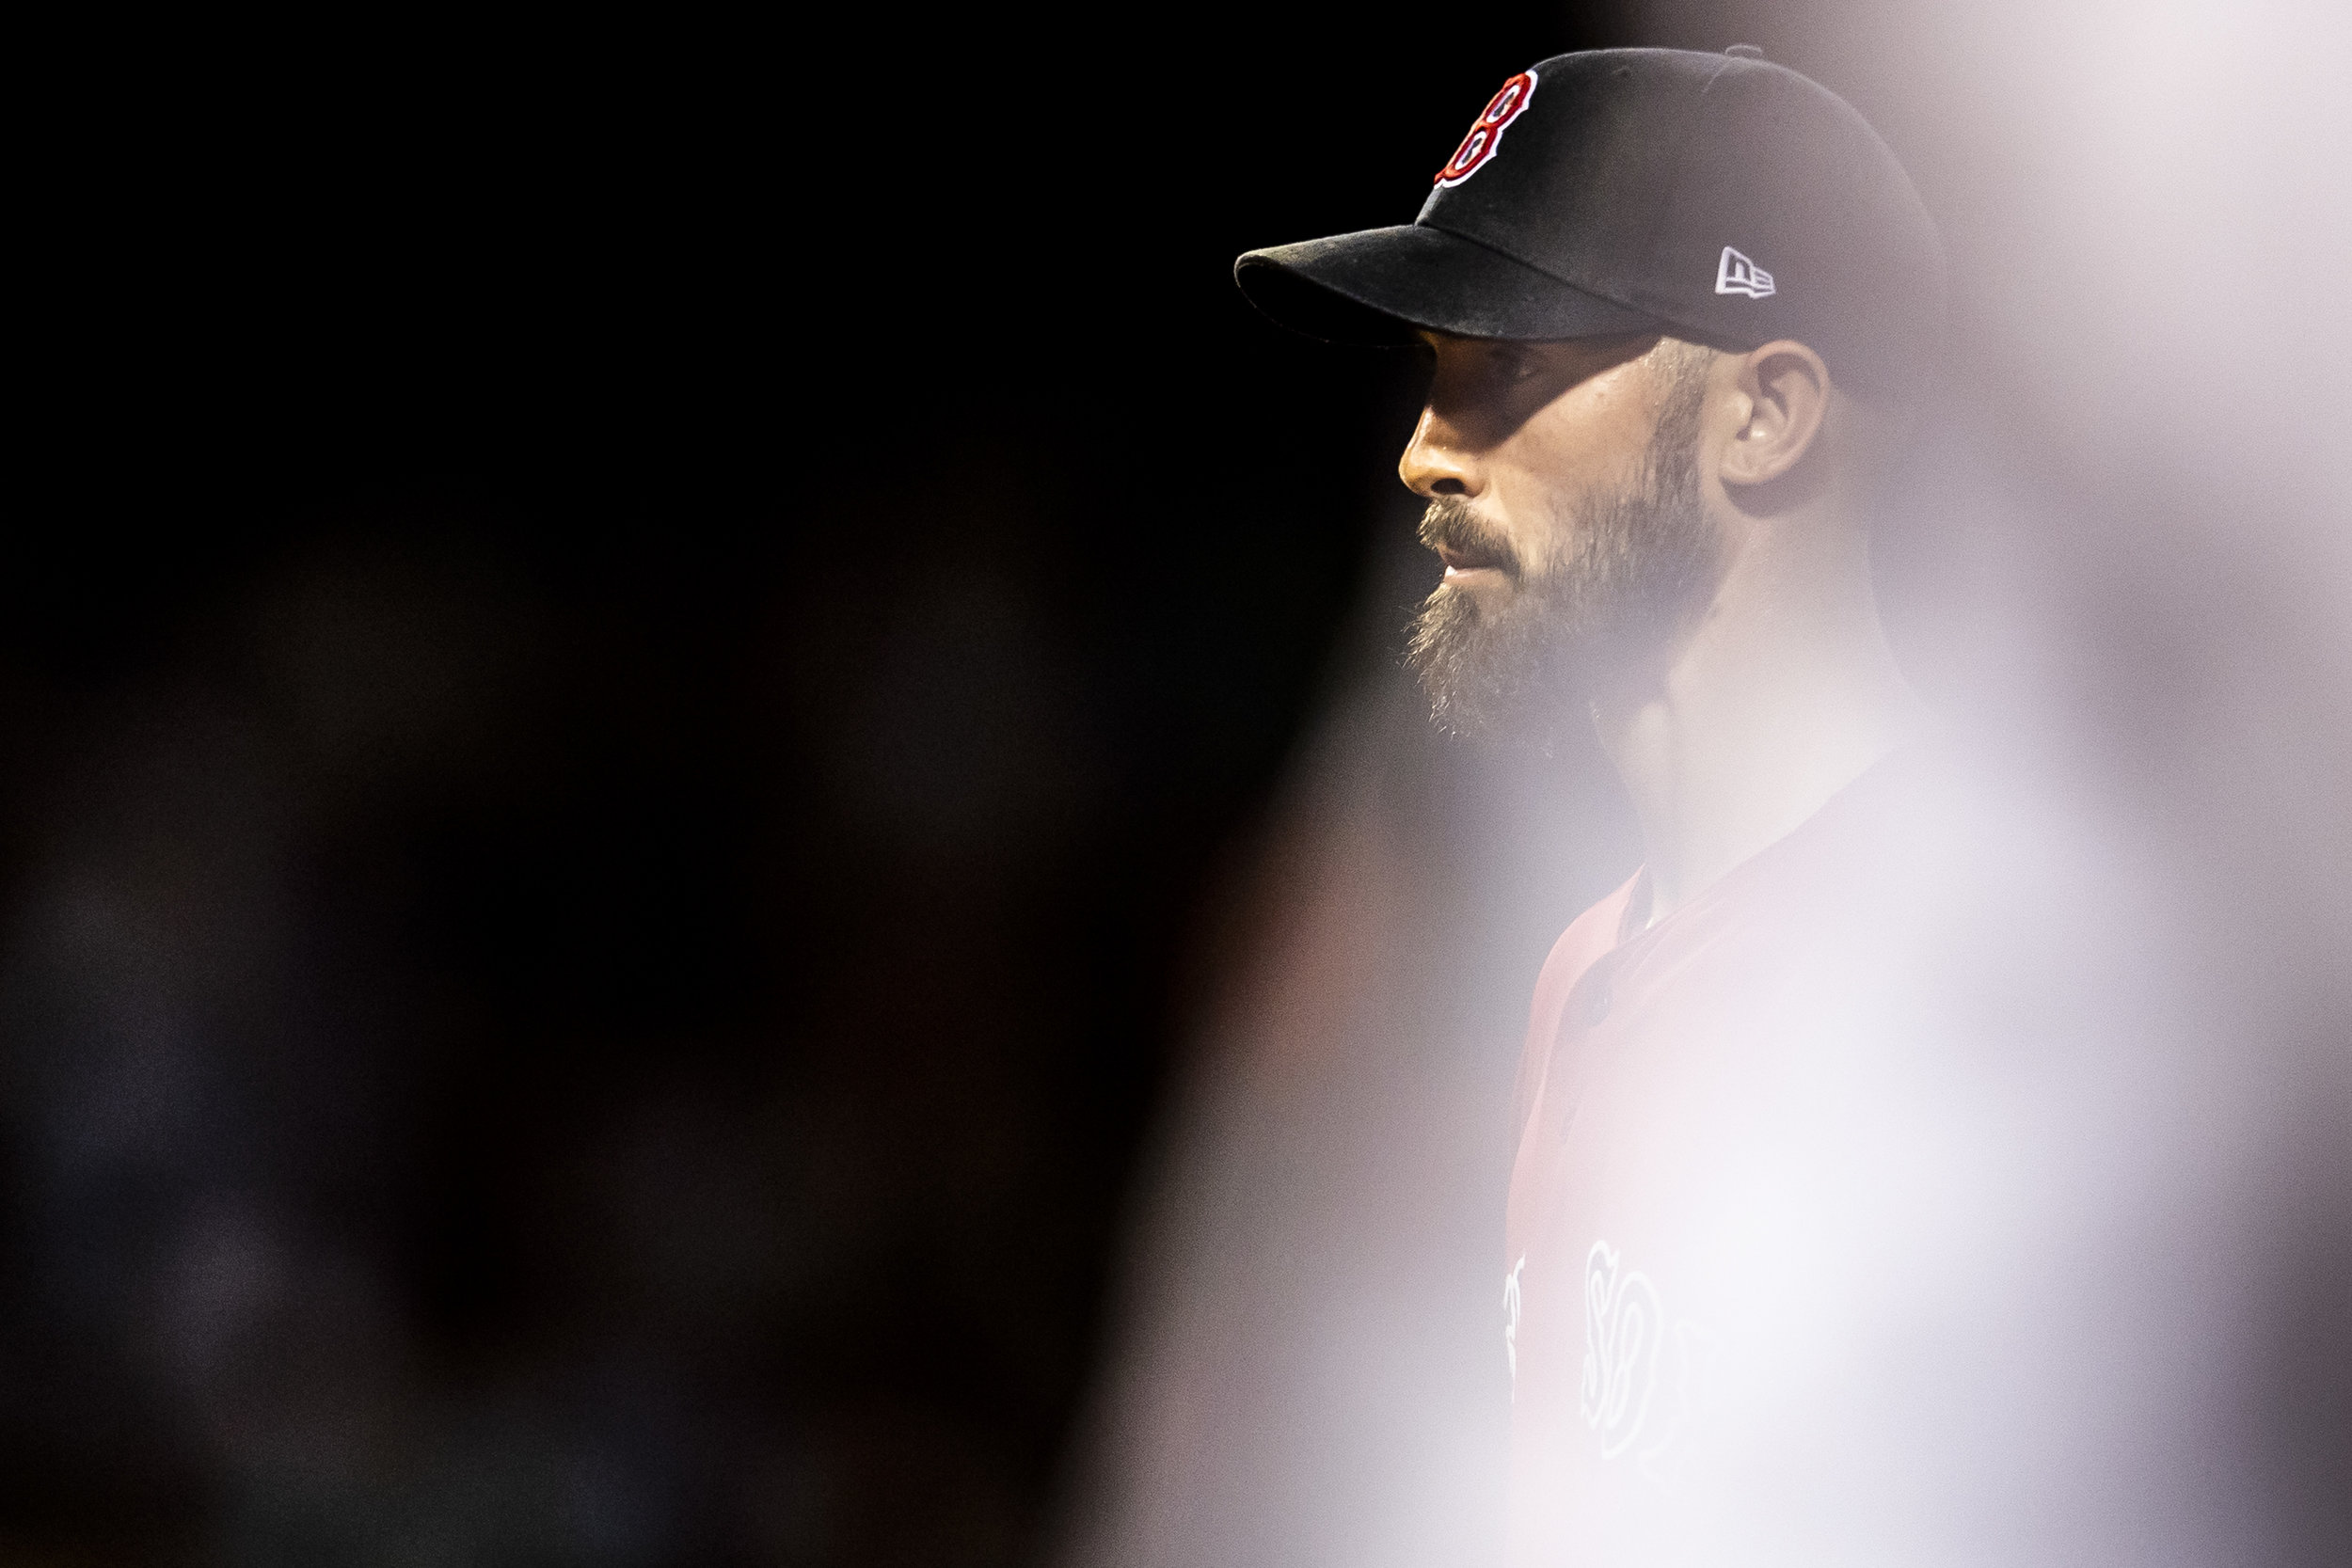 August 3, 2018, Boston, MA: Boston Red Sox pitcher Rick Porcello walks off the field after the end of the inning as the Boston Red Sox face the New York Yankees at Fenway Park in Boston, Massachusetts on Friday, August 3, 2018. (Photo by Matthew Thomas/Boston Red Sox)